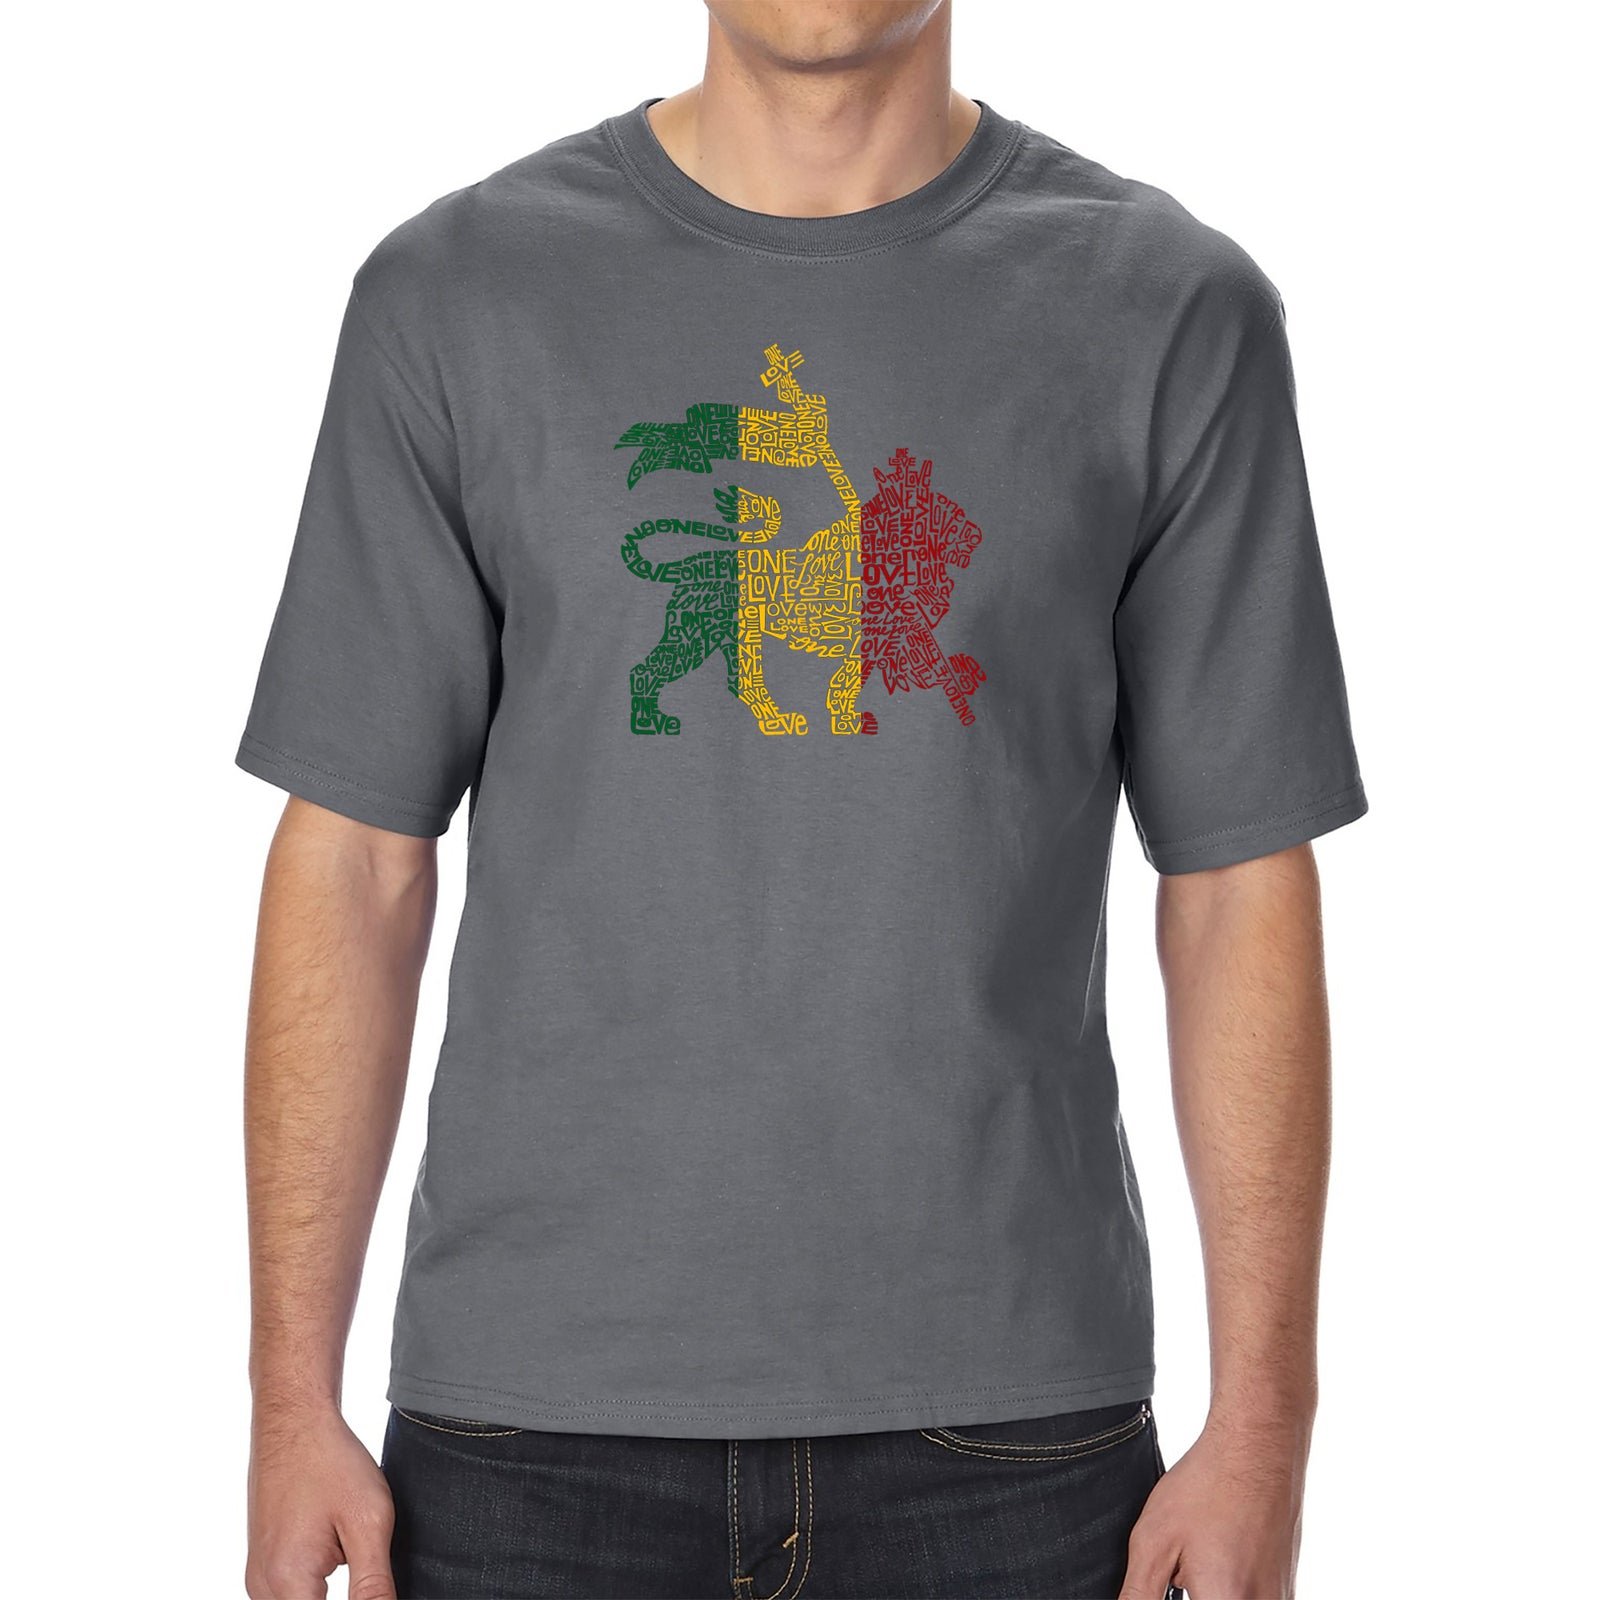 Men's Tall and Long Word Art T-shirt - Rasta Lion - One Love